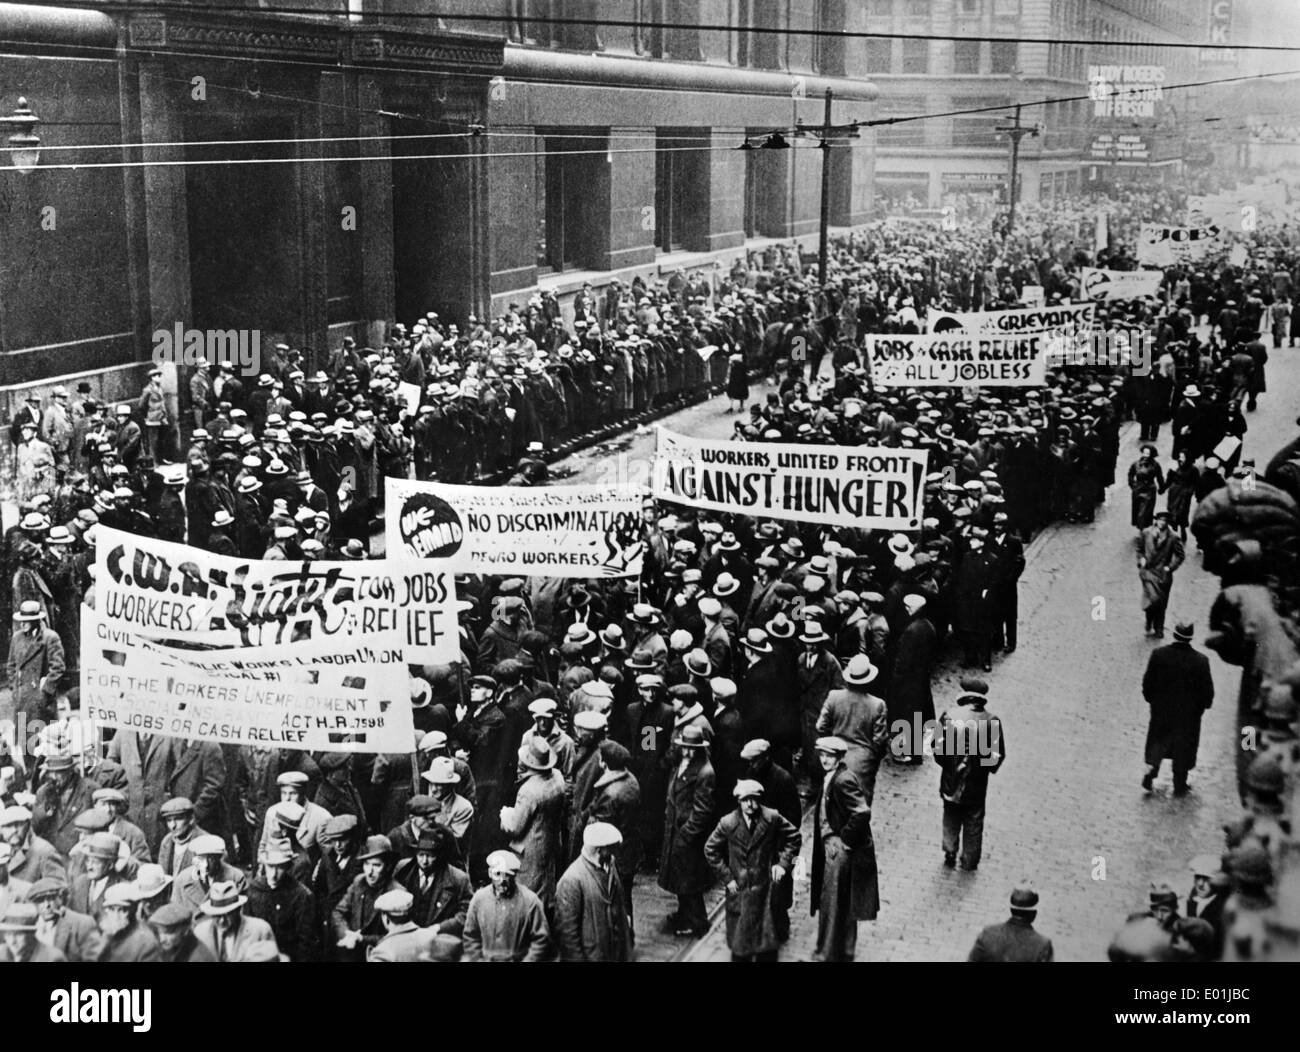 Global economic crisis: Unemployed demonstrators in New York Stock Photo